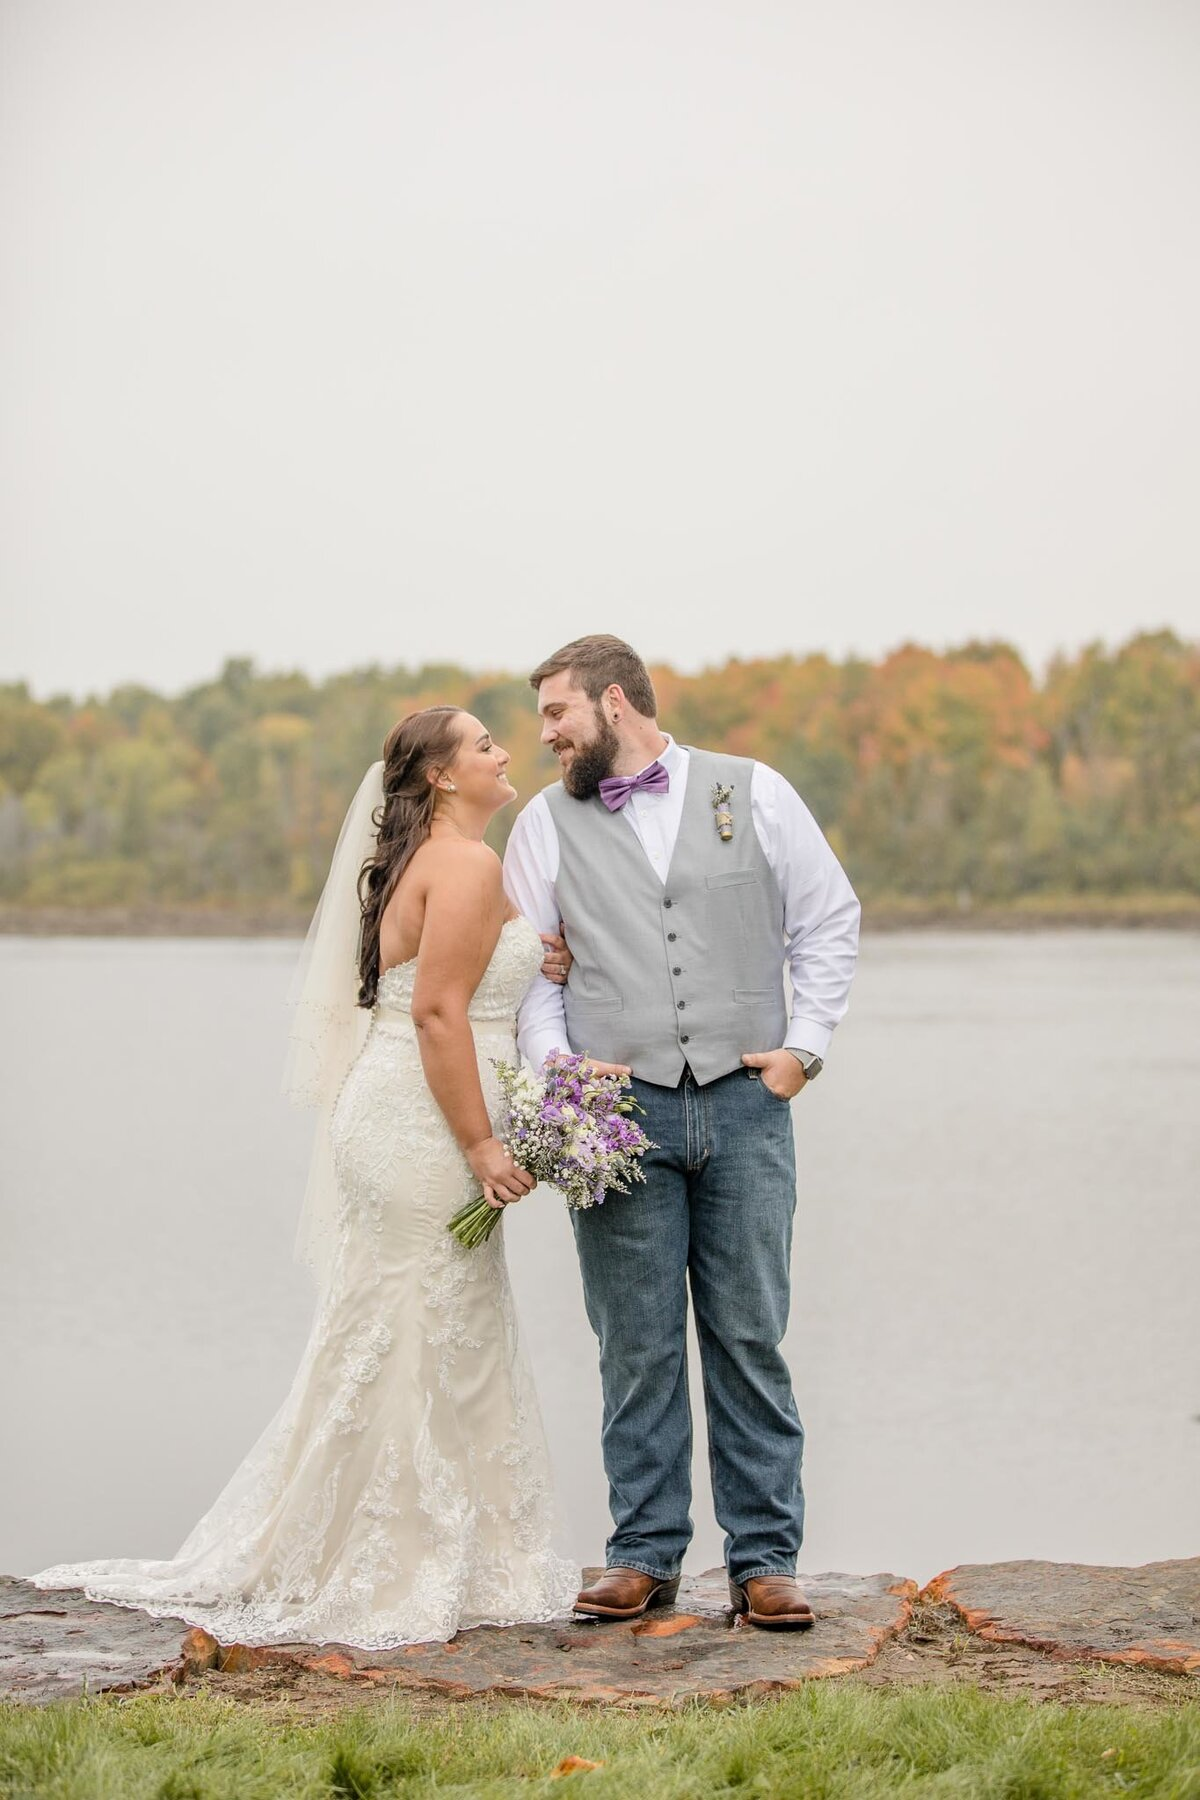 Rachel-Elise-Photography-Syracuse-New-York-Wedding-Photographer-41